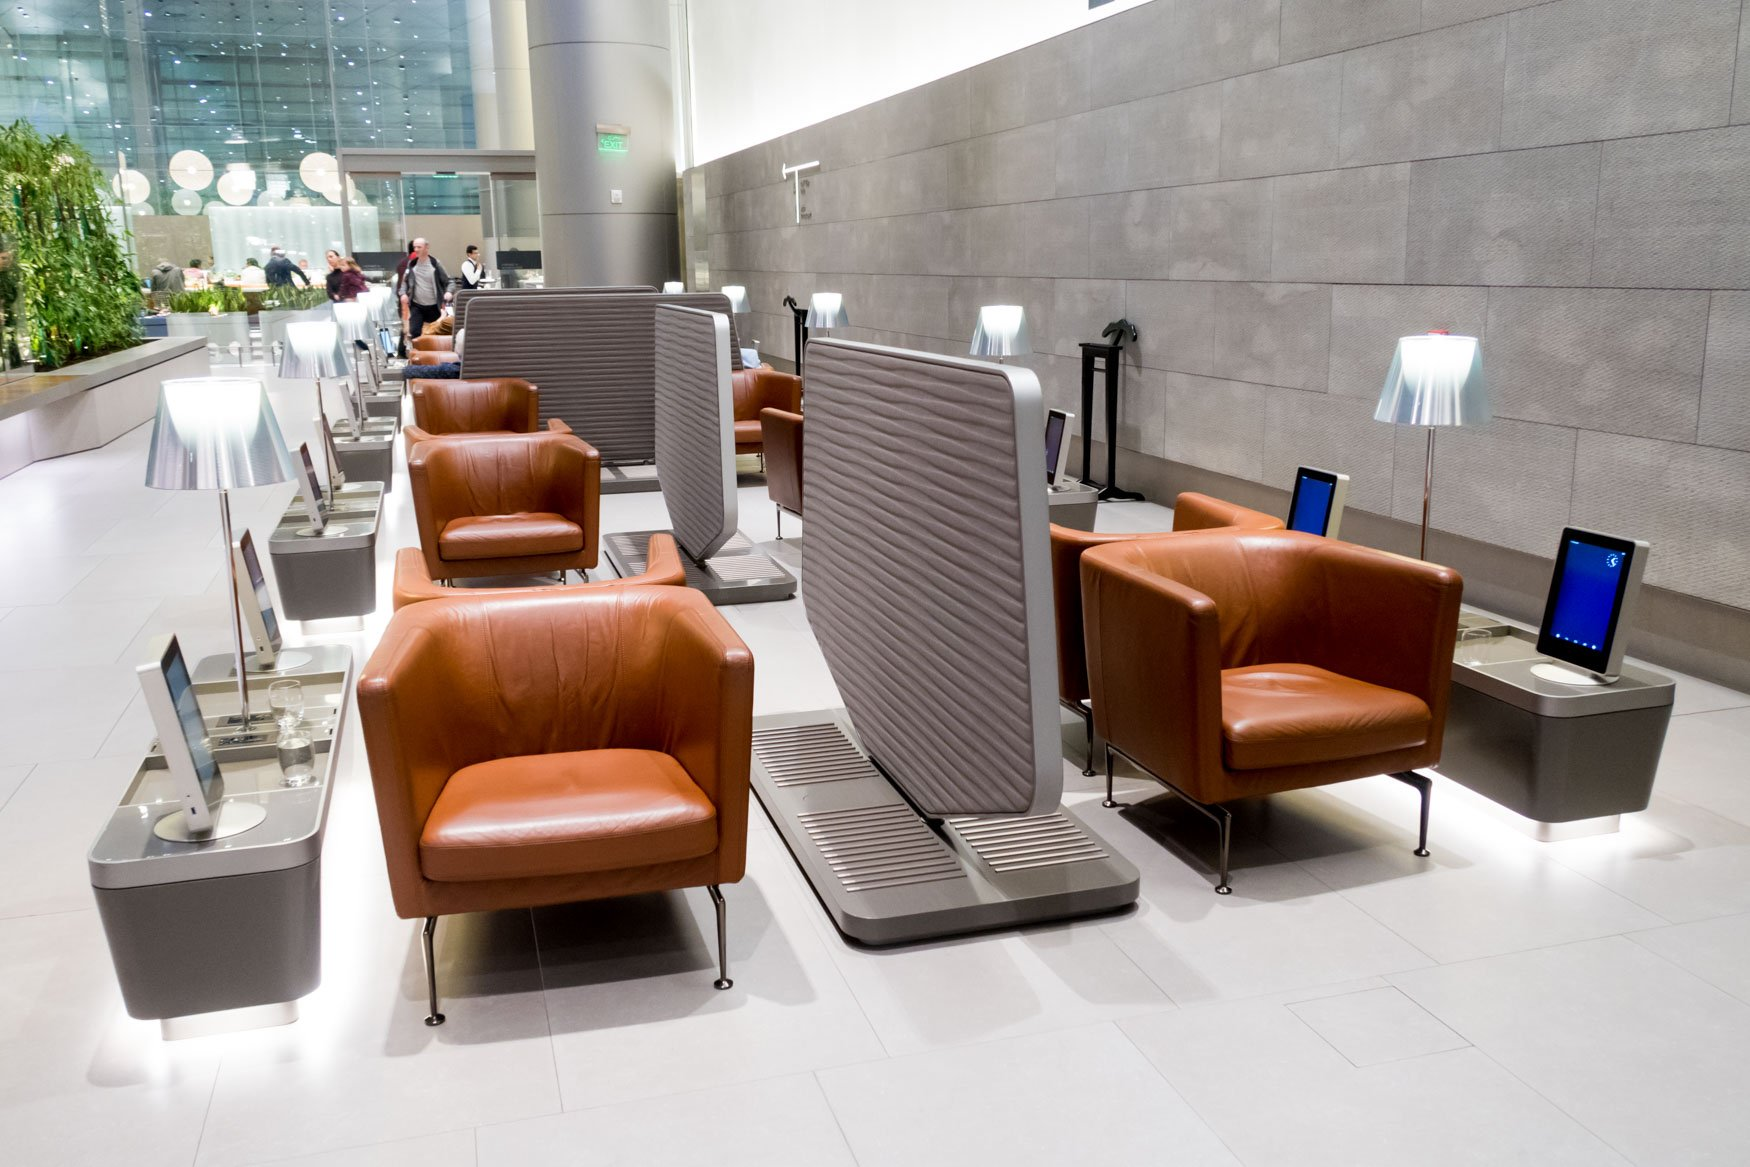 Qatar Airways Business Class Lounge Doha Review